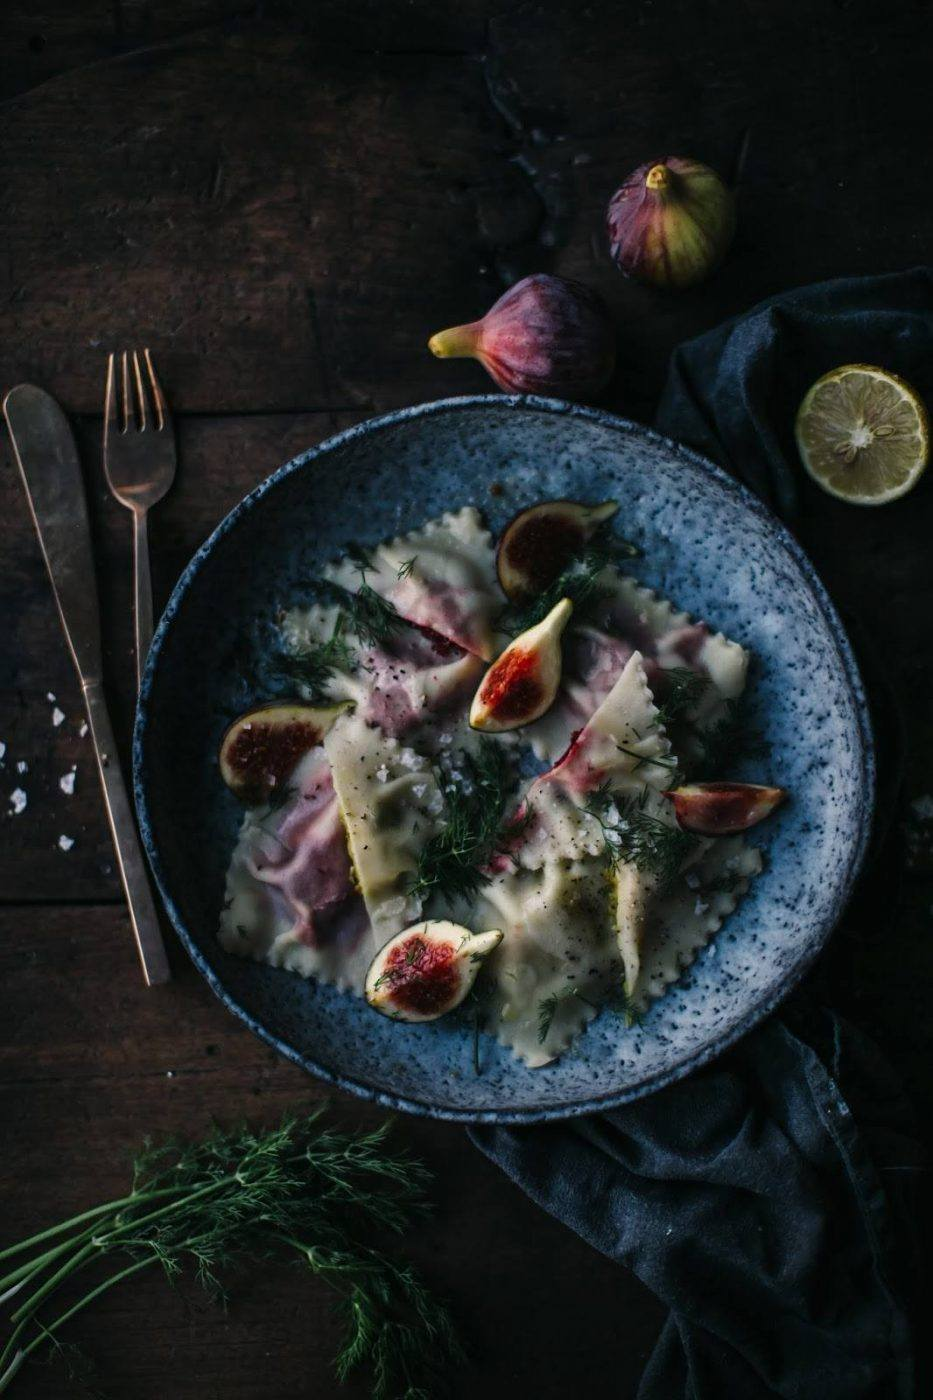 Image for Gluten-free Ravioli filled with Red and Yellow Beetroot and delicious Cheese from Kaltbach